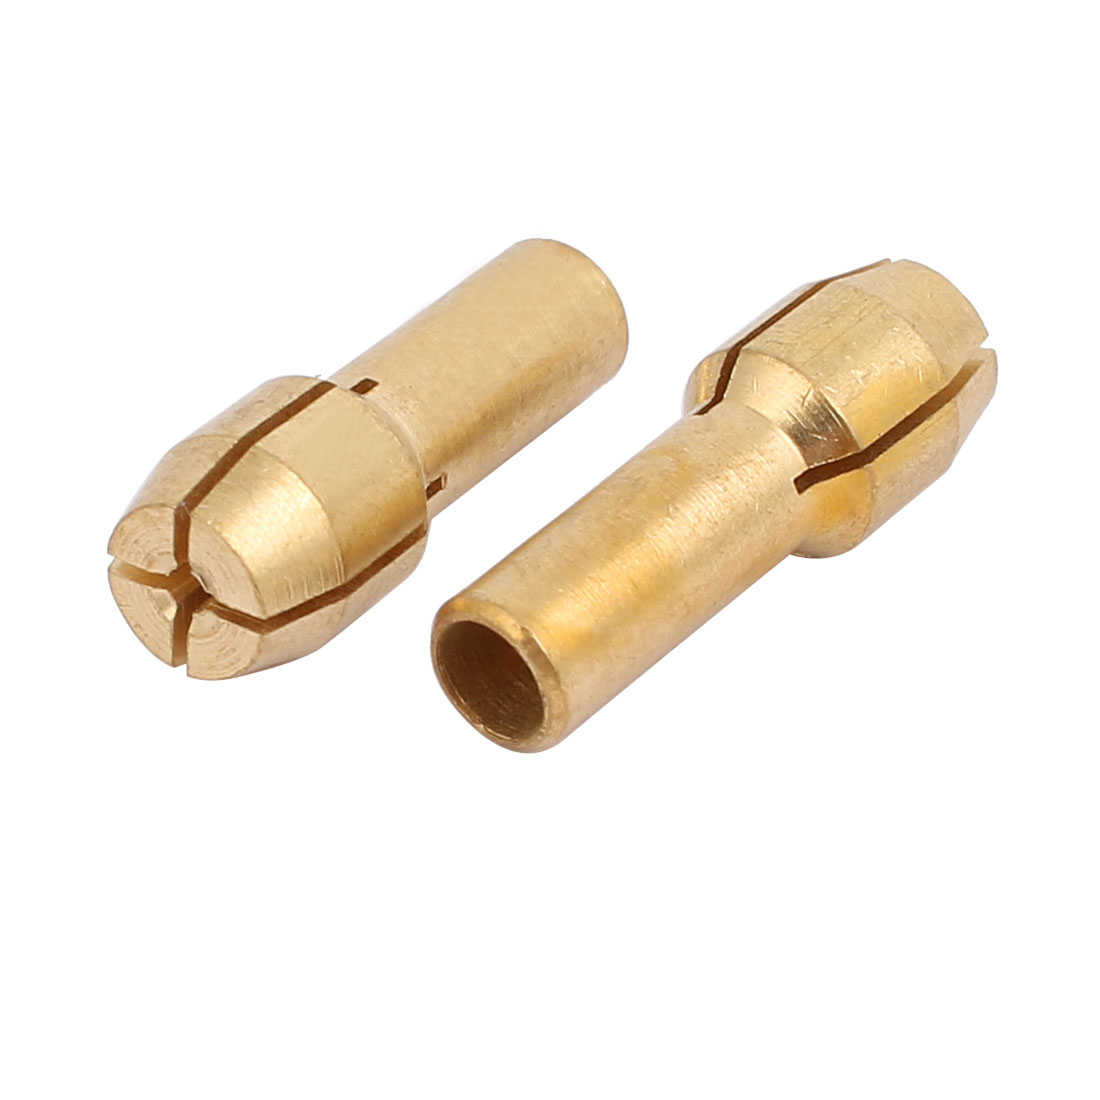 10pcs 0.5mm Clamping Dia Brass Qucik Change Collet Nut for Rotary Power Tool